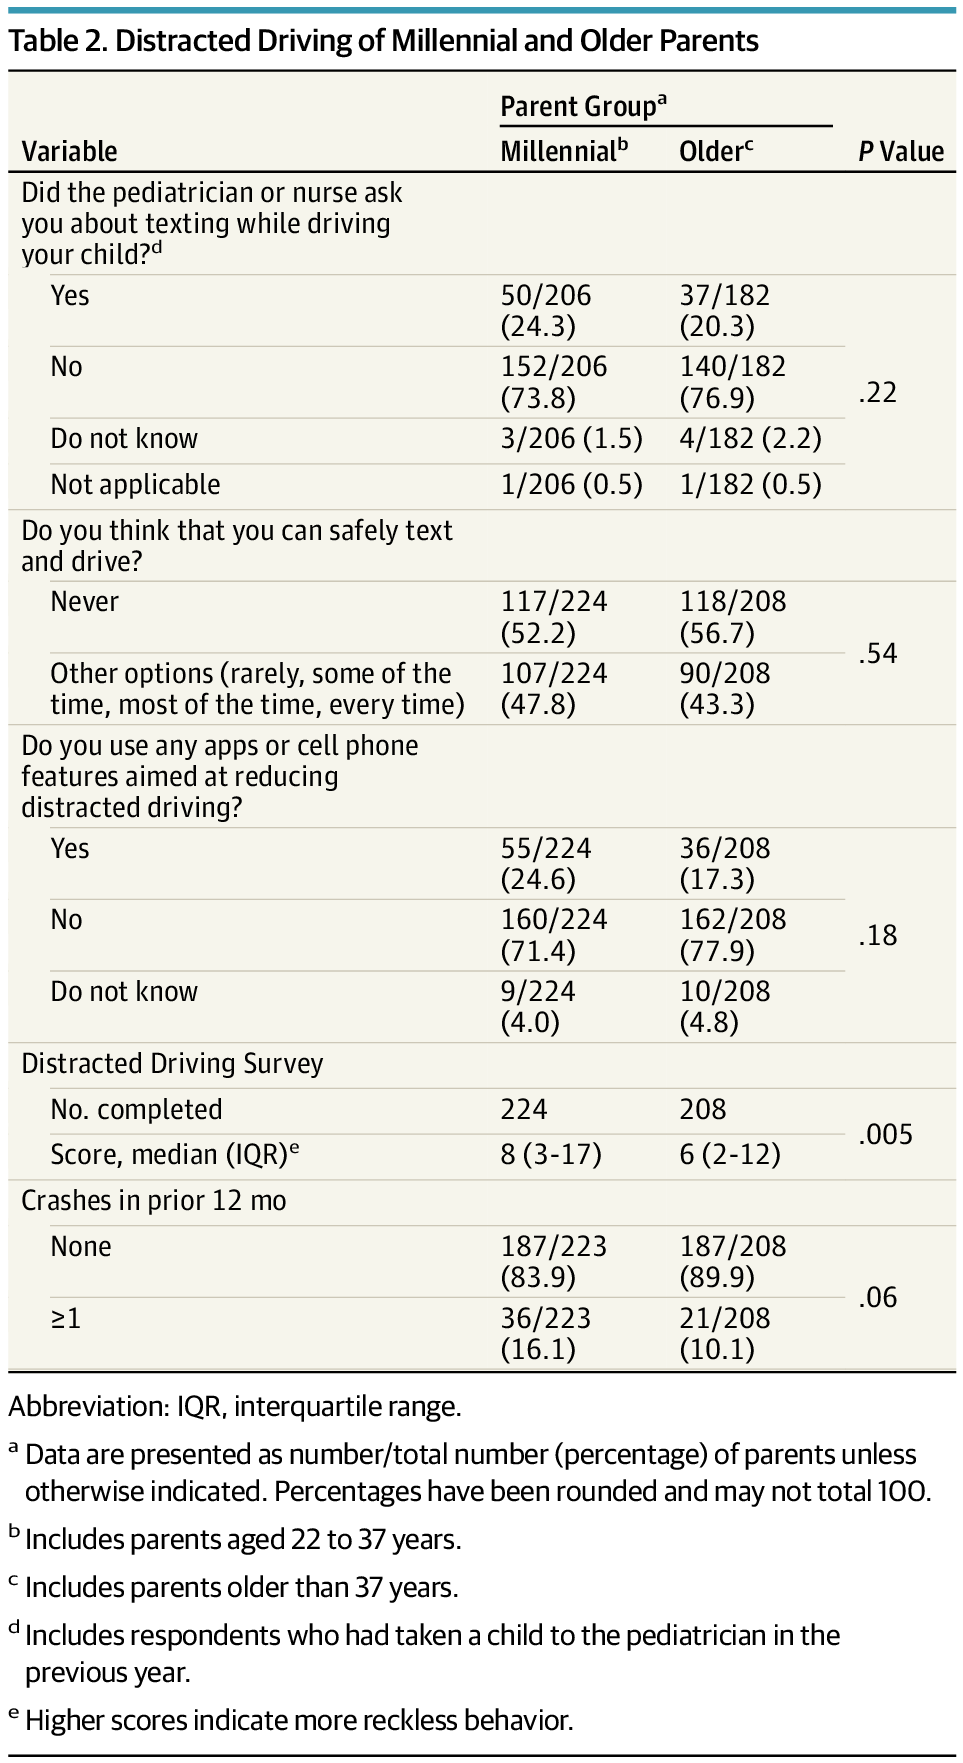 Patterns of Texting and Driving in a US National Survey of Millennial Parents vs Older Parents